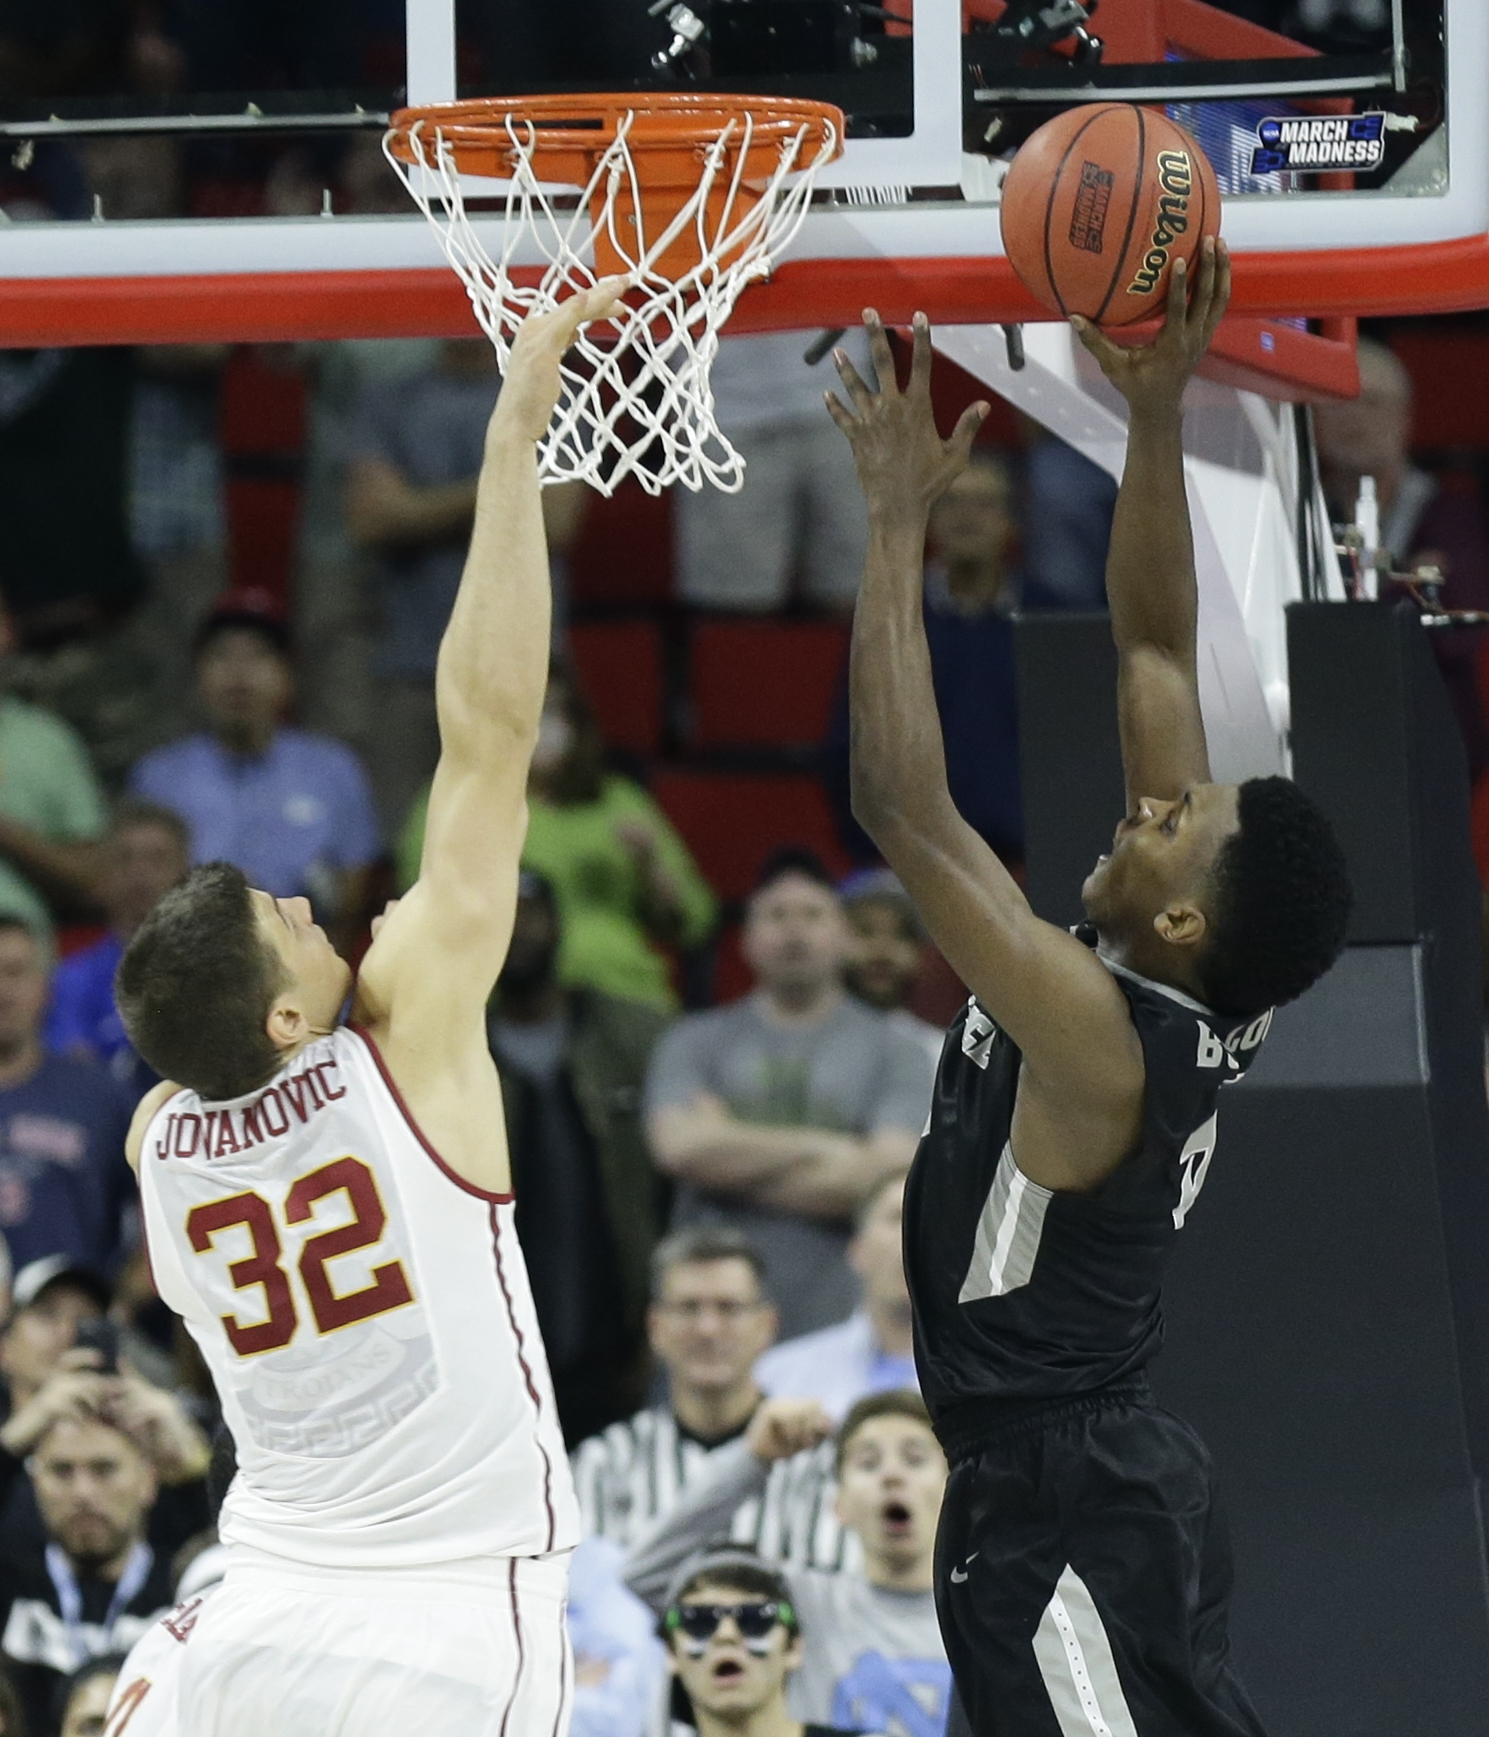 Providence forward Rodney Bullock (5) shoots the winning basket against Southern California forward Nikola Jovanovic (32) during the second half of a first-round men's college basketball game in the NCAA Tournament, Friday, March 18, 2016, in Raleigh, N.C